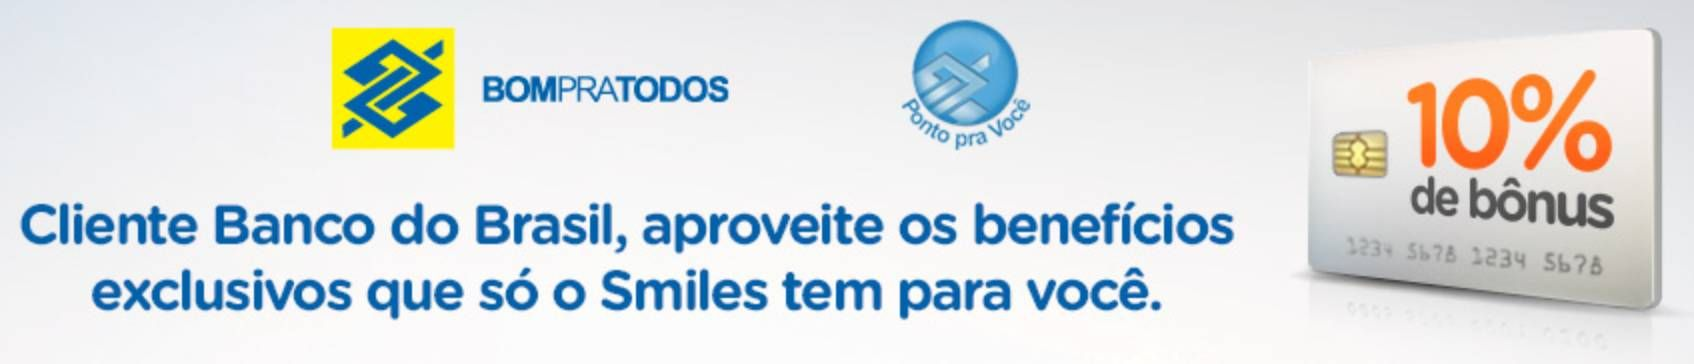 smiles banco do brasil